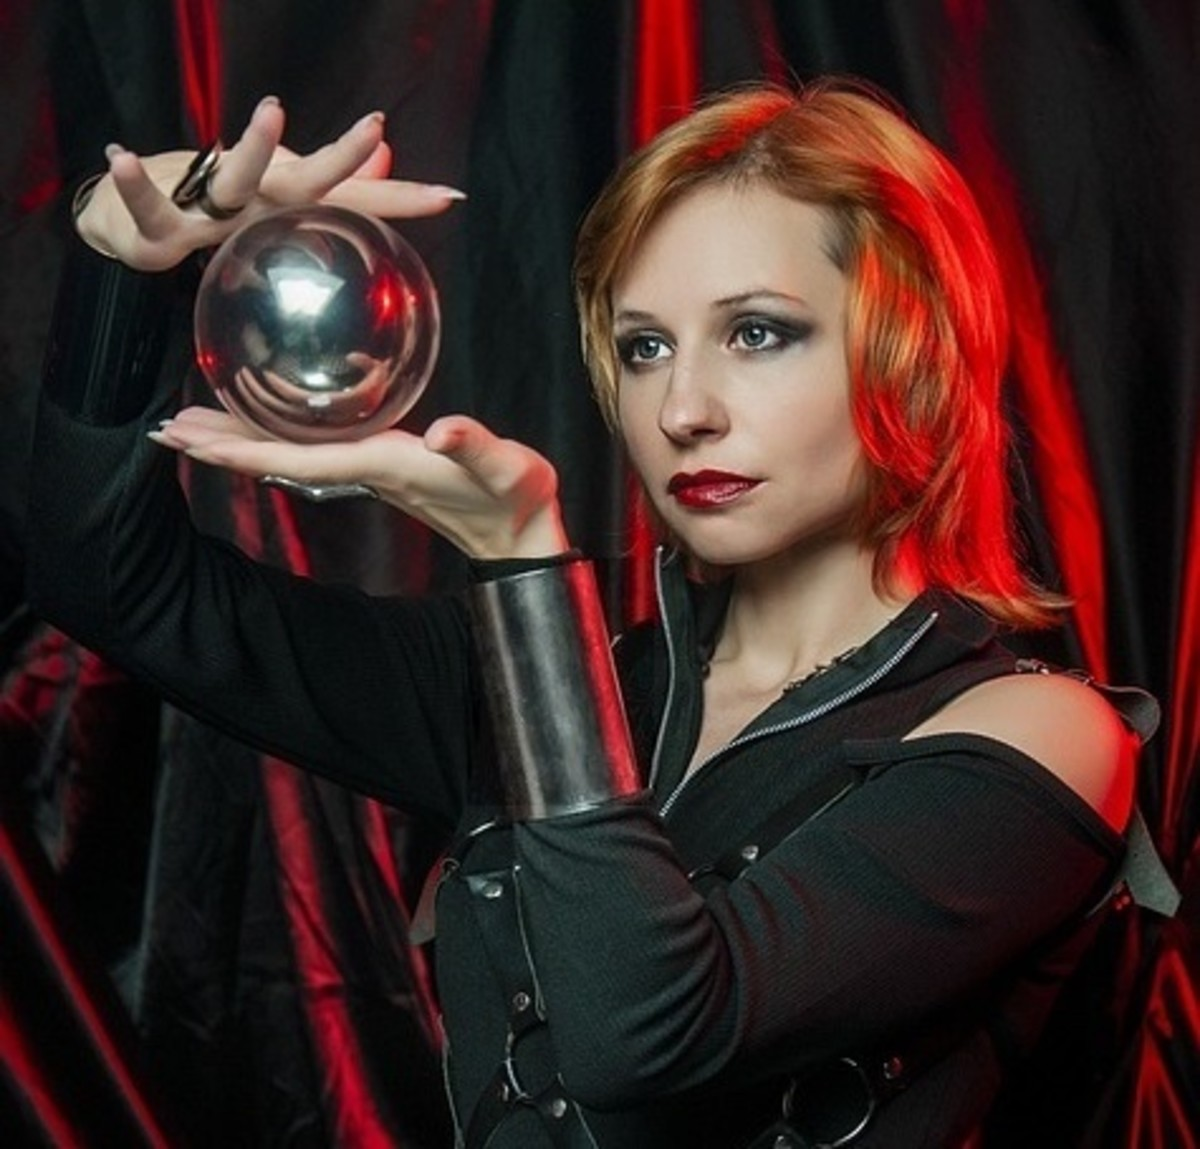 An individual holding a scryable object (for psychometry).